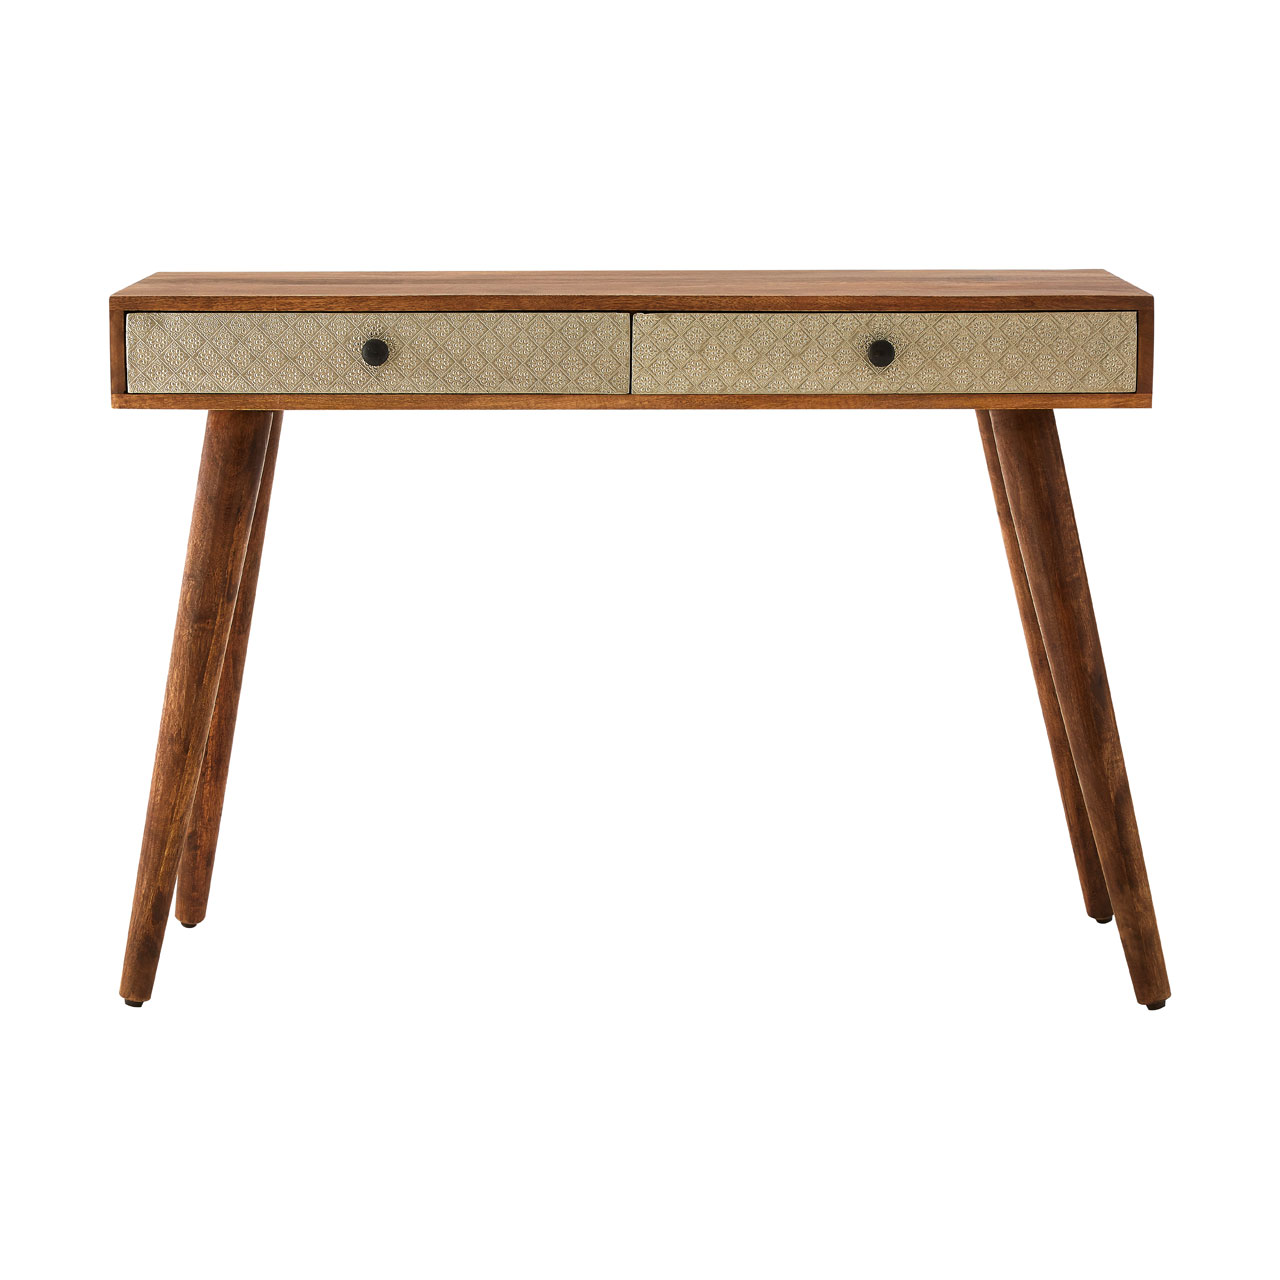 Zara Sofa Table: Zara Console Table With 2 Drawers. Knees Home And Electrical